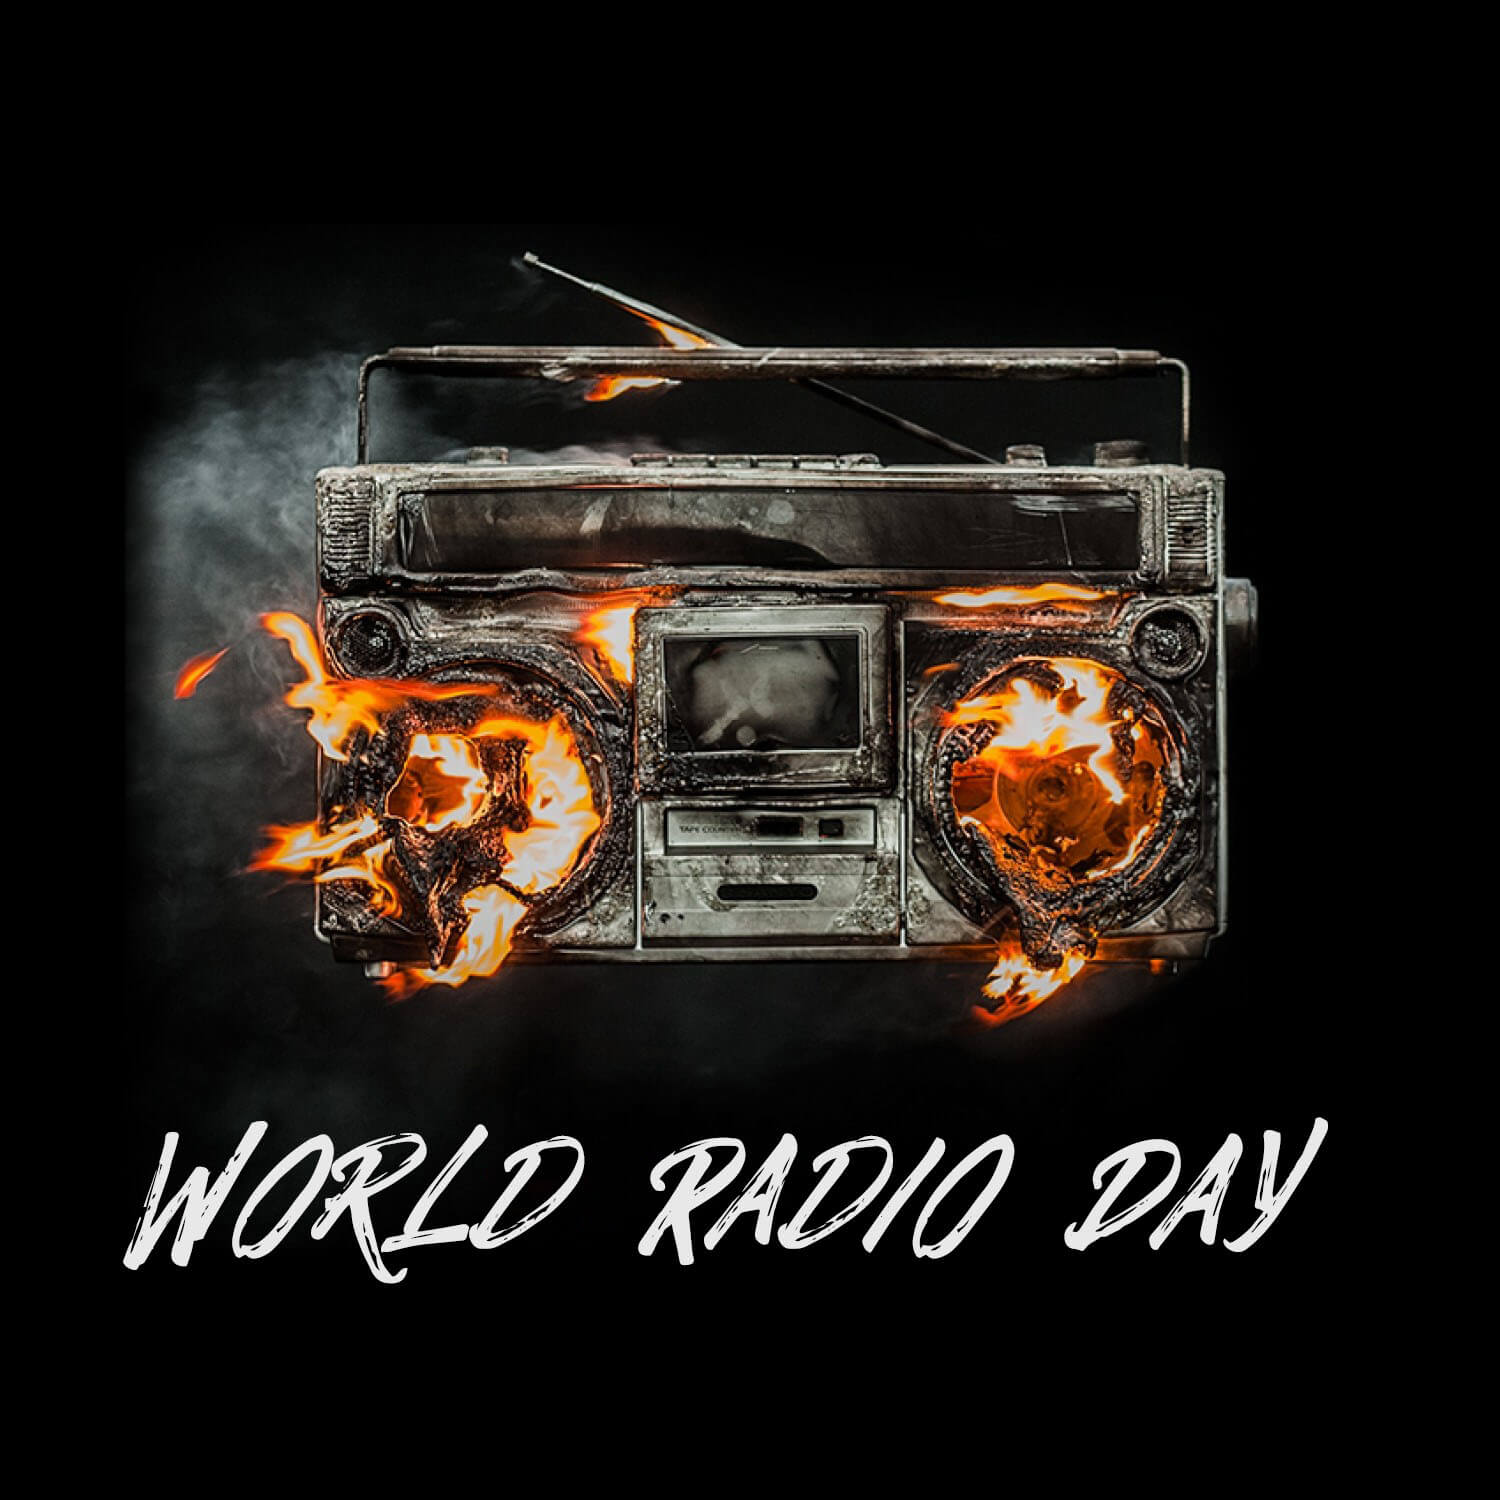 world radio day new latest desktop background hd wallpaper